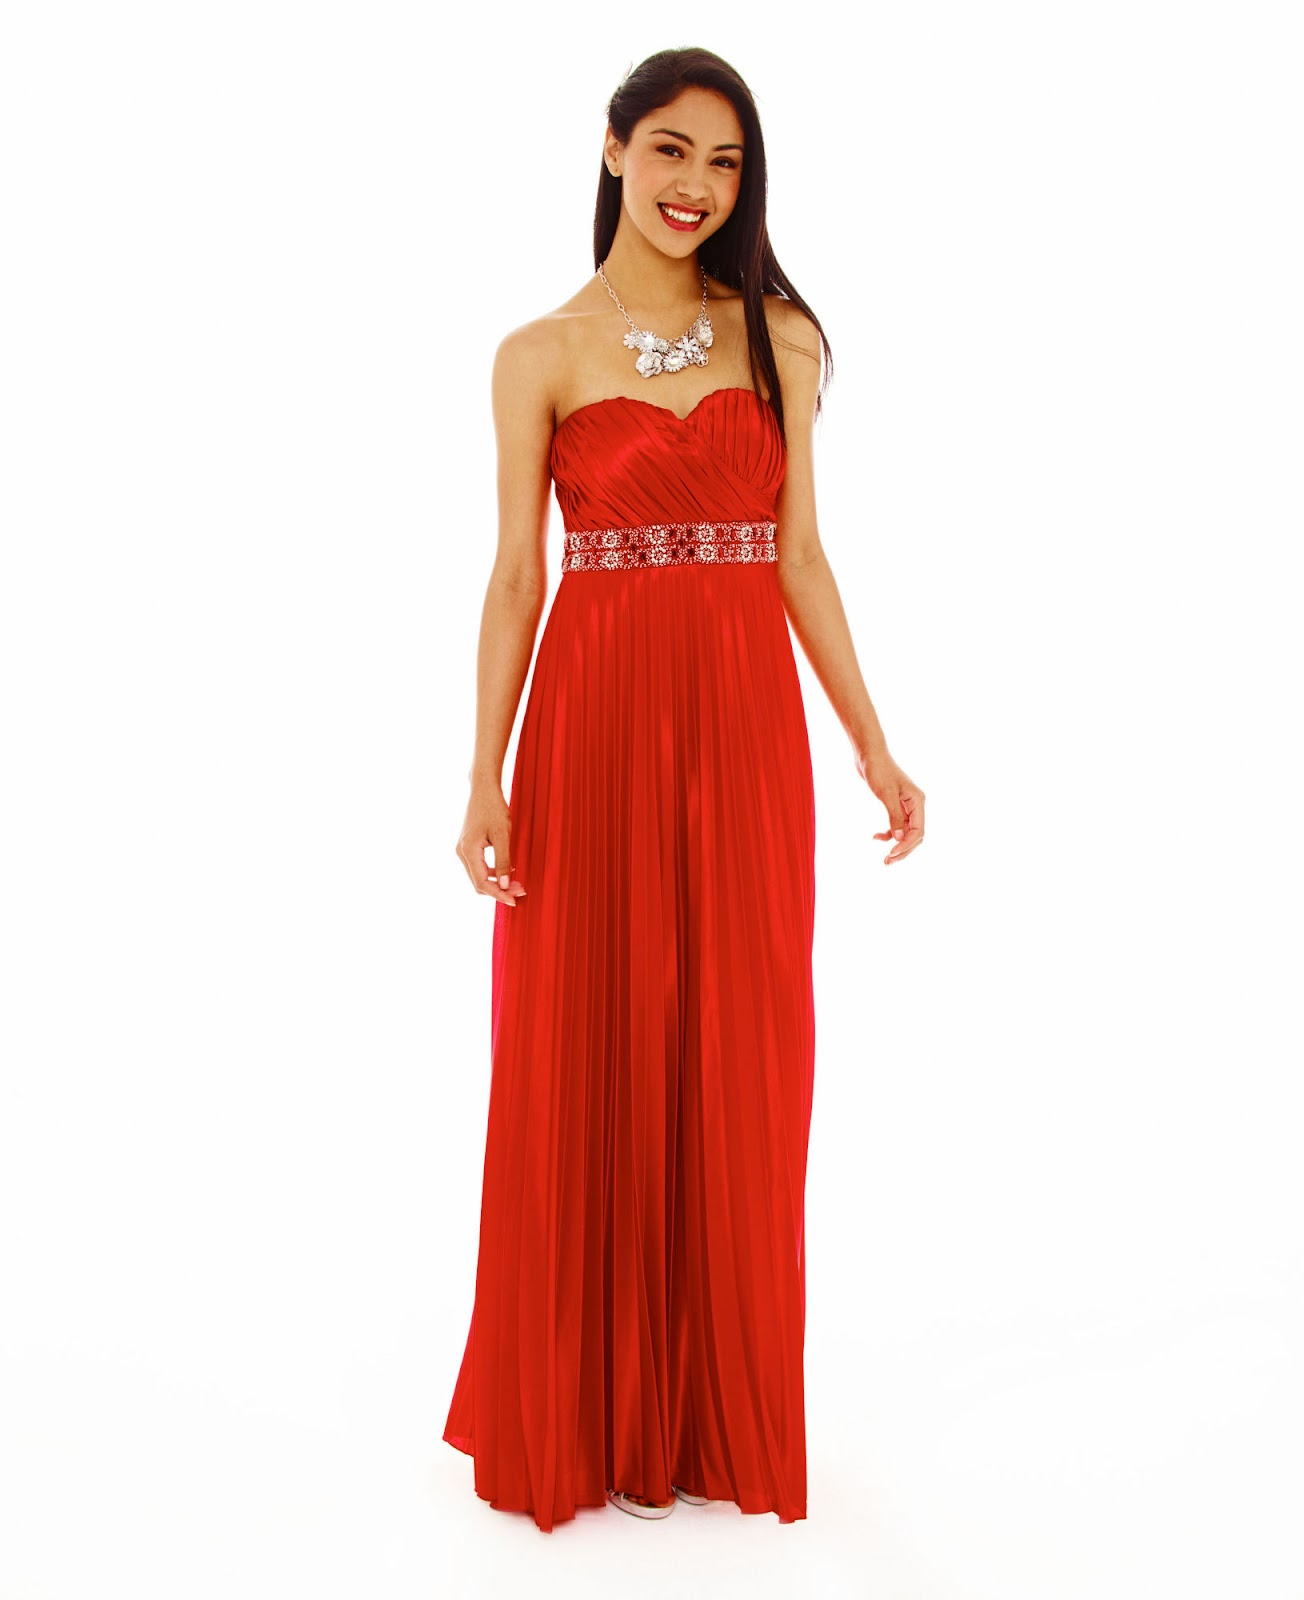 to wear - Juniors jcpenney dresses video